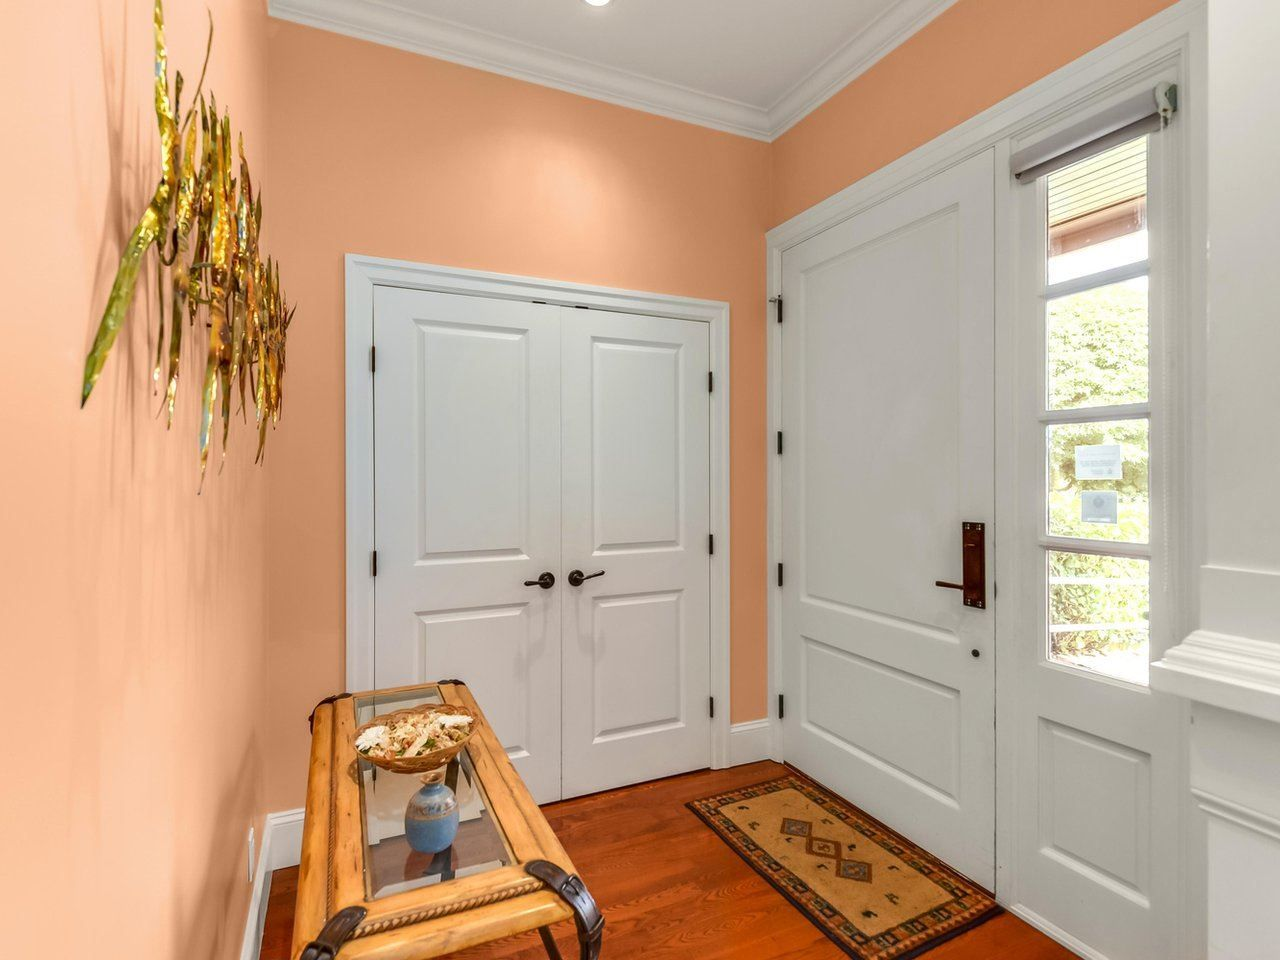 Photo 2: Photos: 694 W 19TH AVENUE in Vancouver: Cambie House for sale (Vancouver West)  : MLS®# R2186365